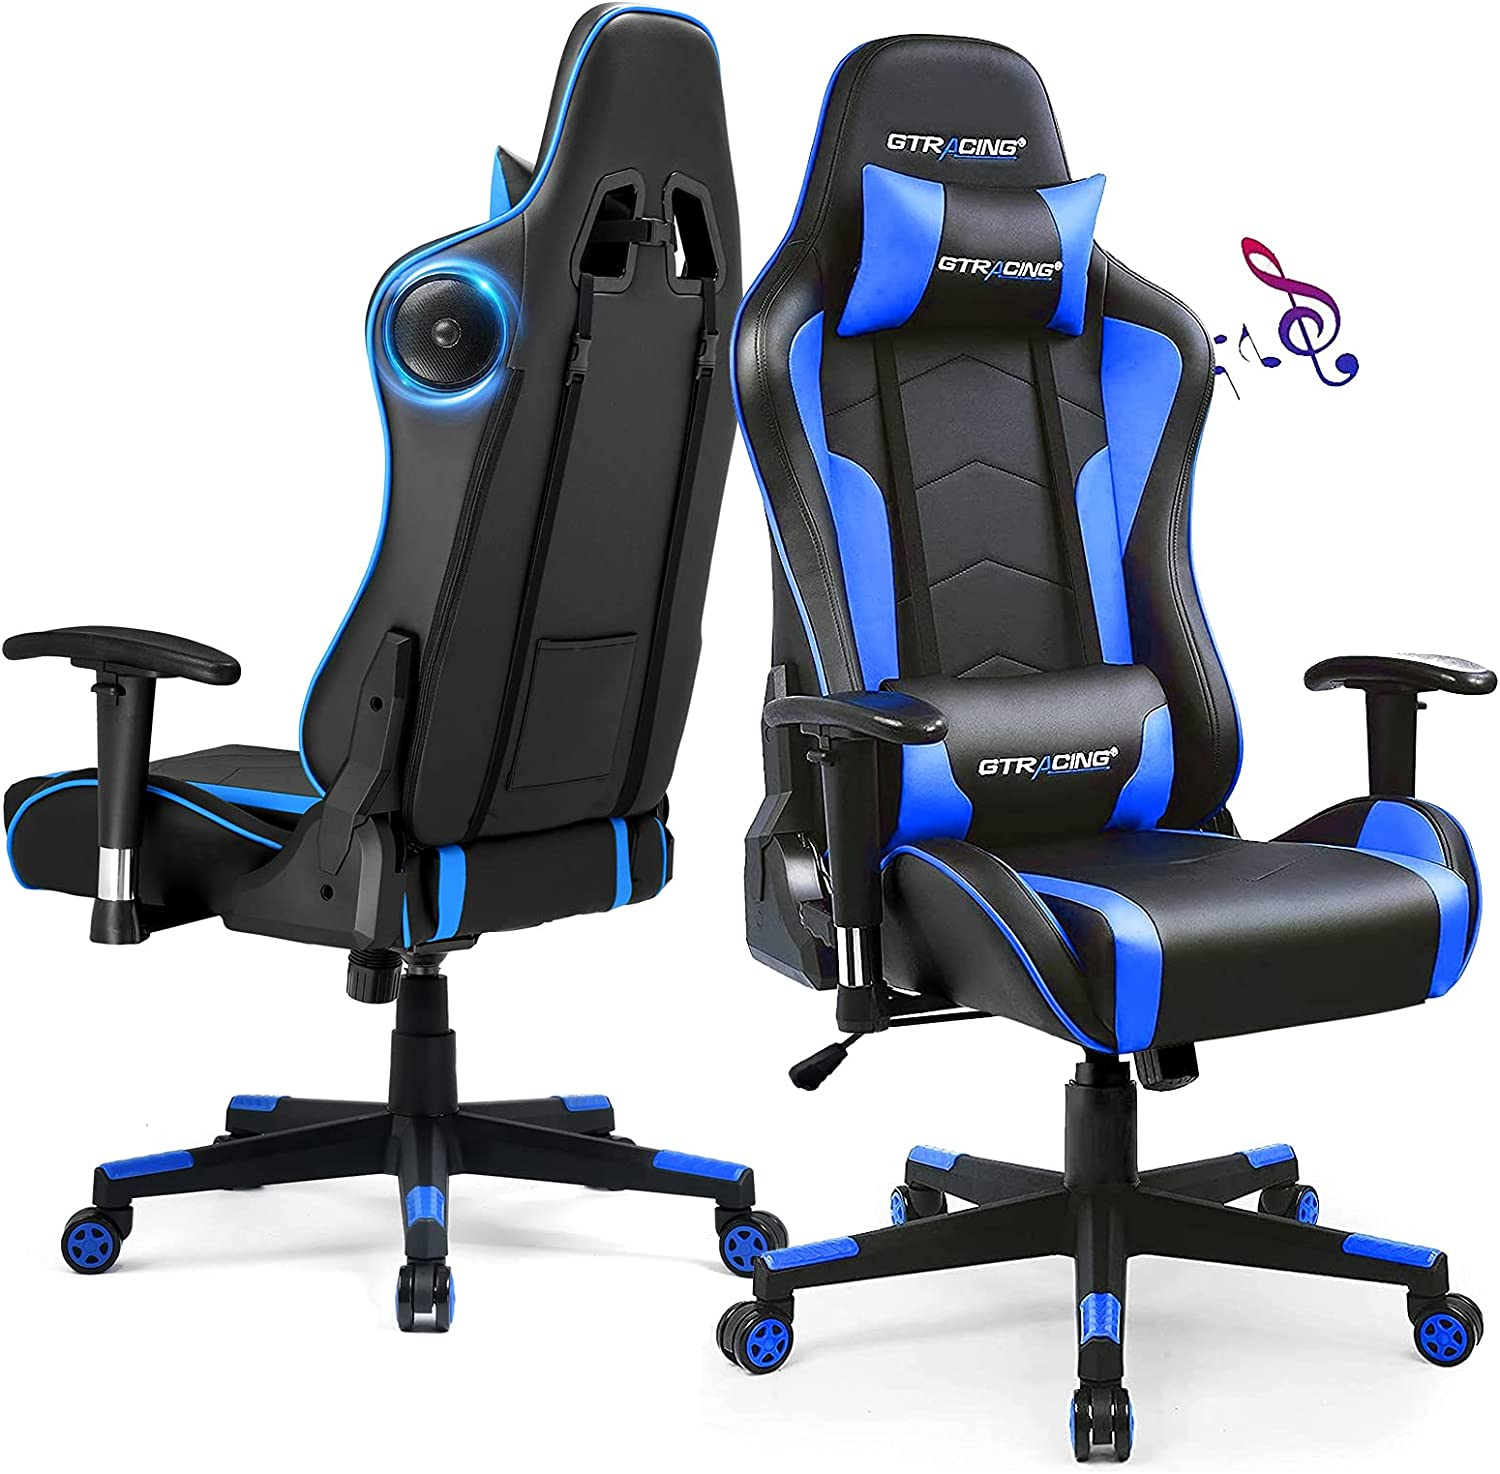 GTRACING Gaming Chair with Speakers Music Bluetooth C Bombing new work Video New product type Game